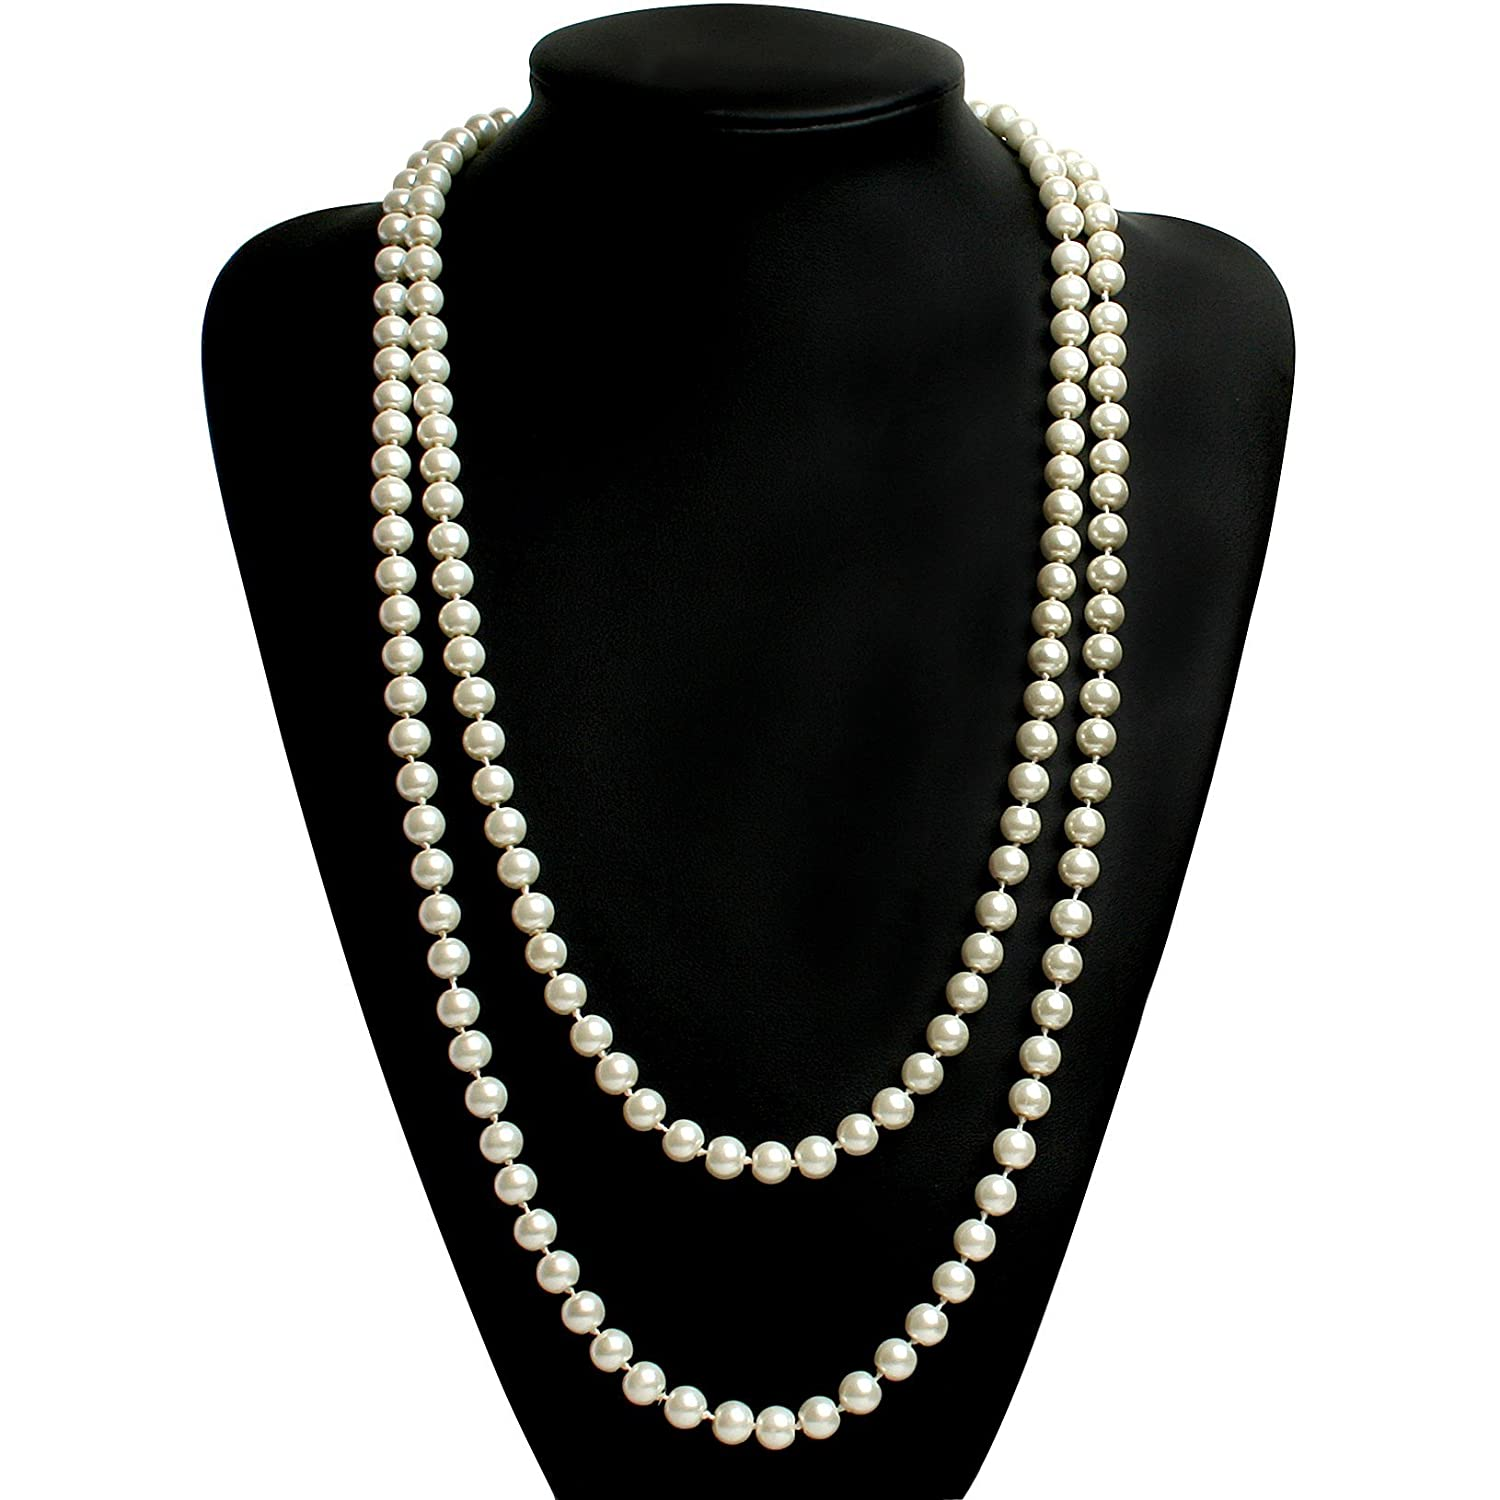 1920s Jewelry Styles History BABEYOND ART DECO Fashion Faux Pearls Flapper Beads Cluster Long Pearl Necklace 55 Diameter of Pearl 0.315